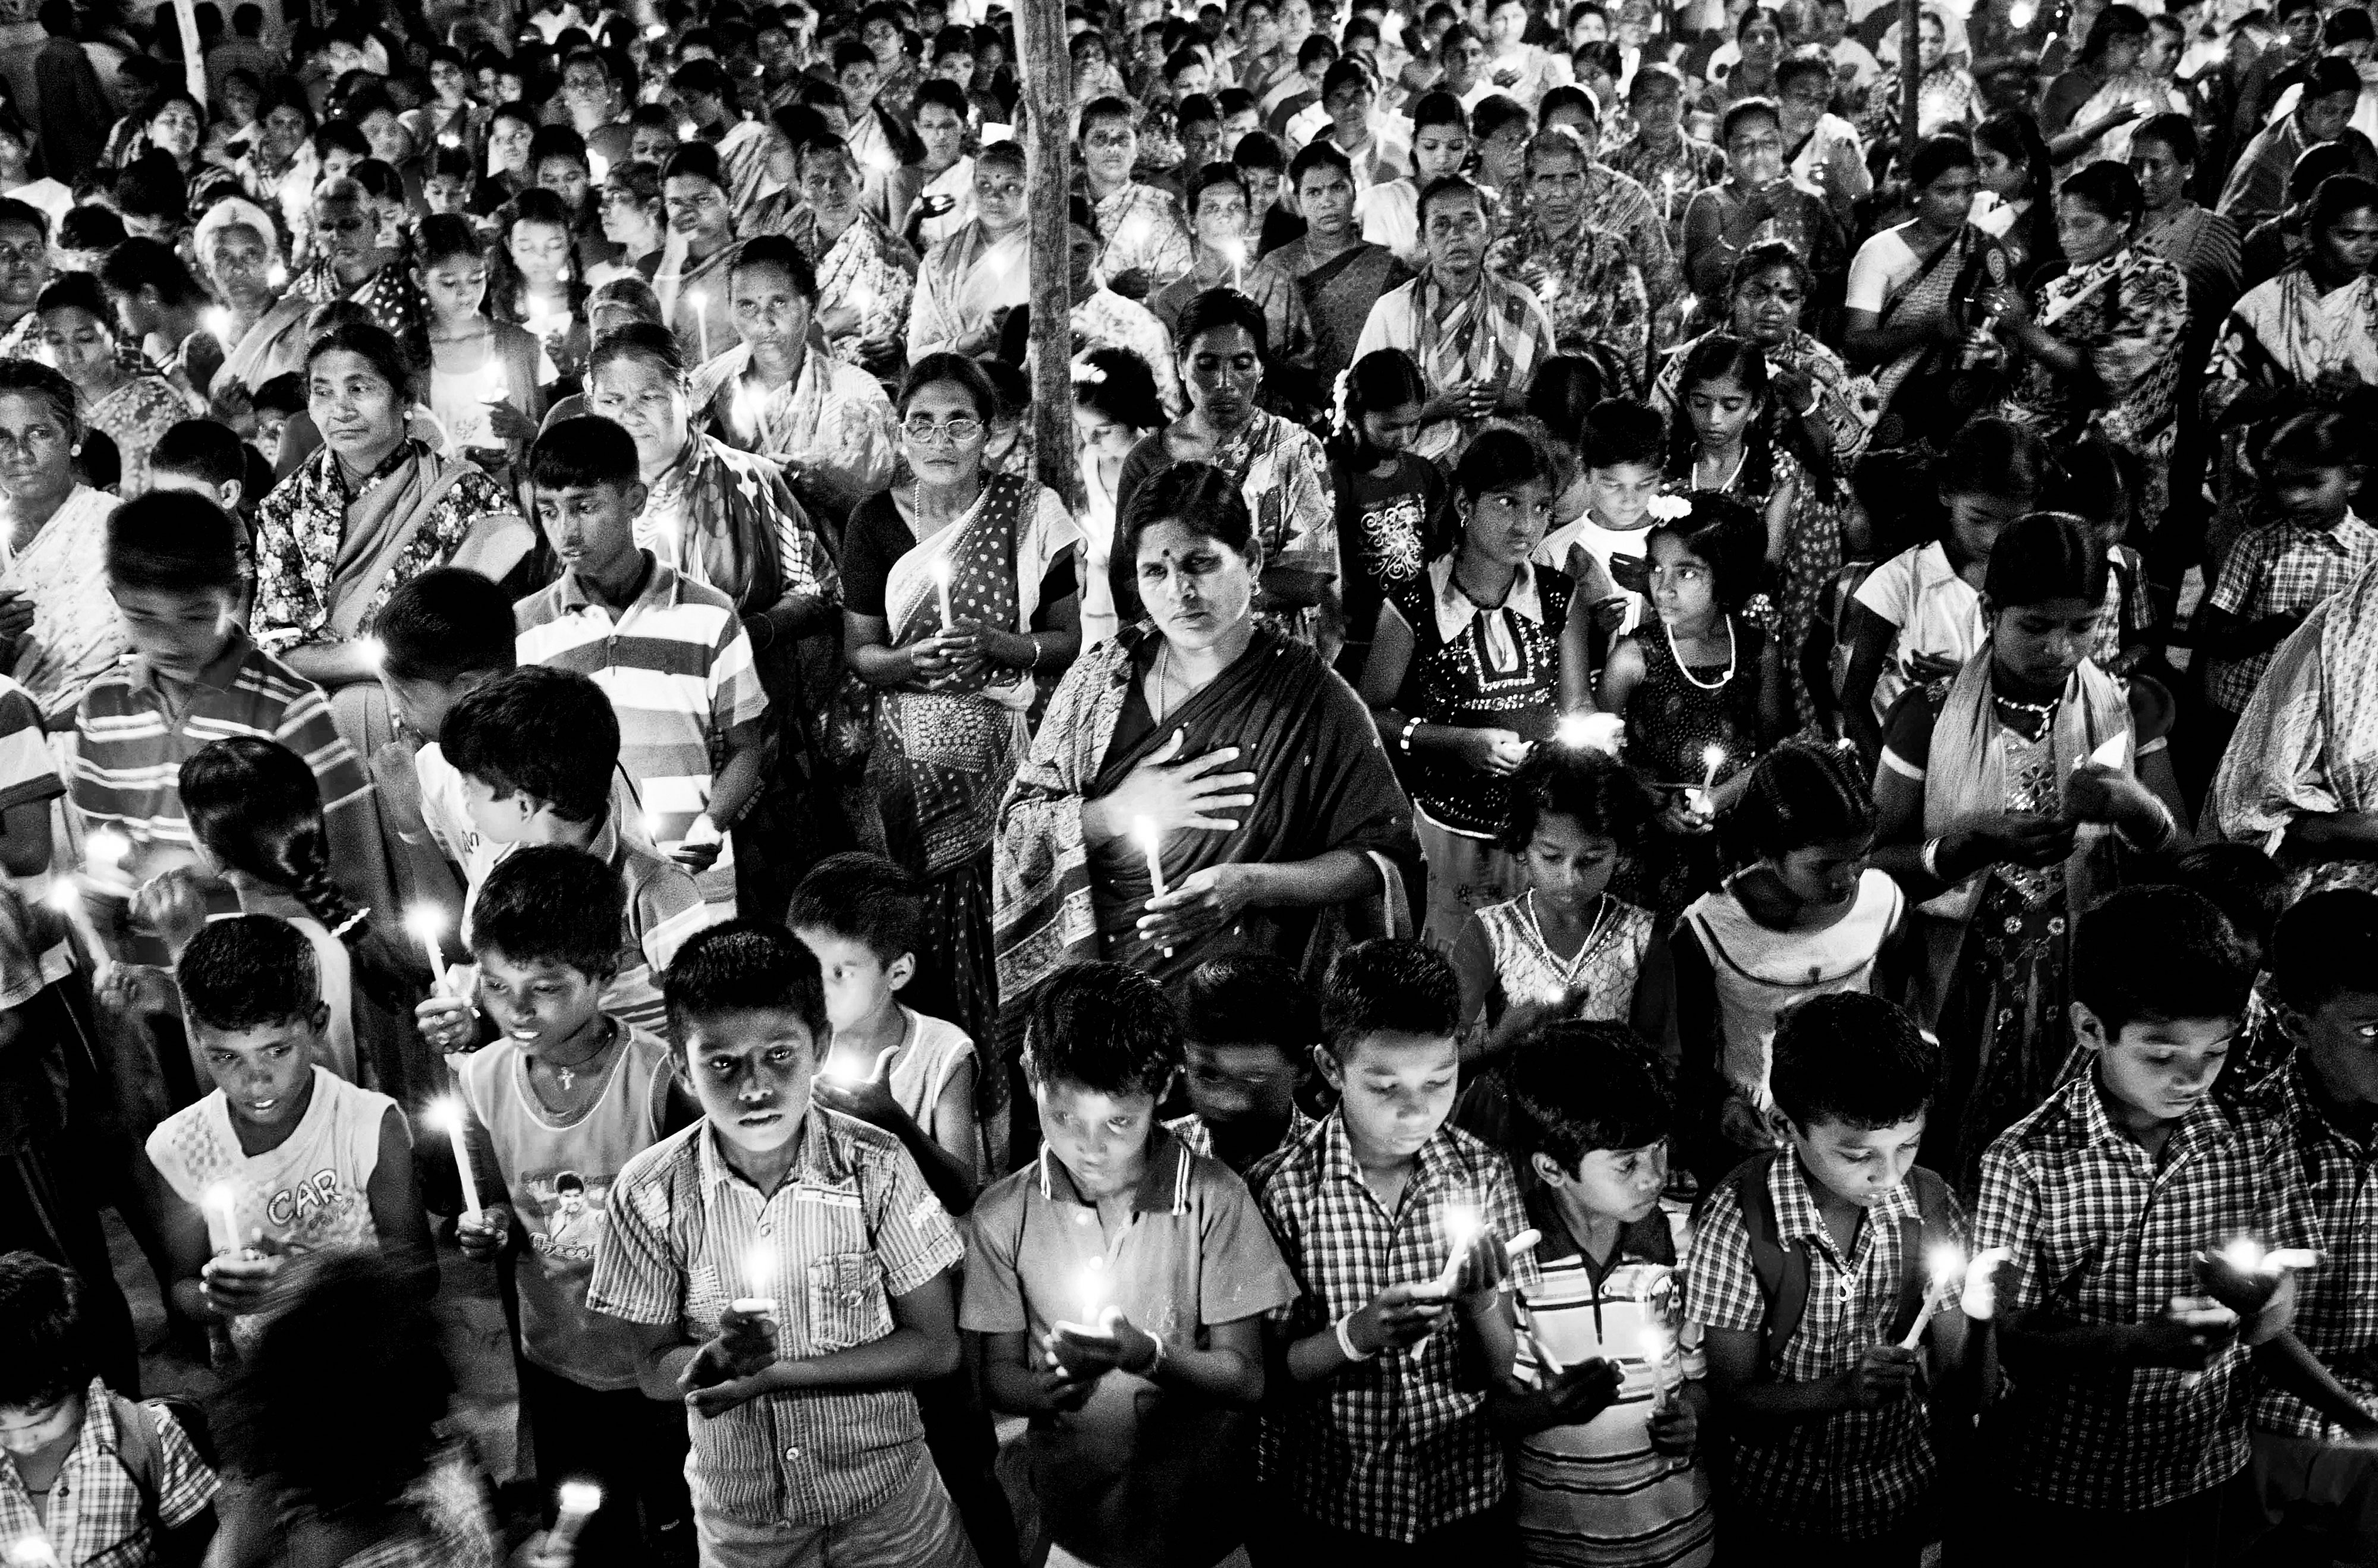 Villagers observe a candle light vigil to pay homage to Hiroshima victims on Hiroshima Day.